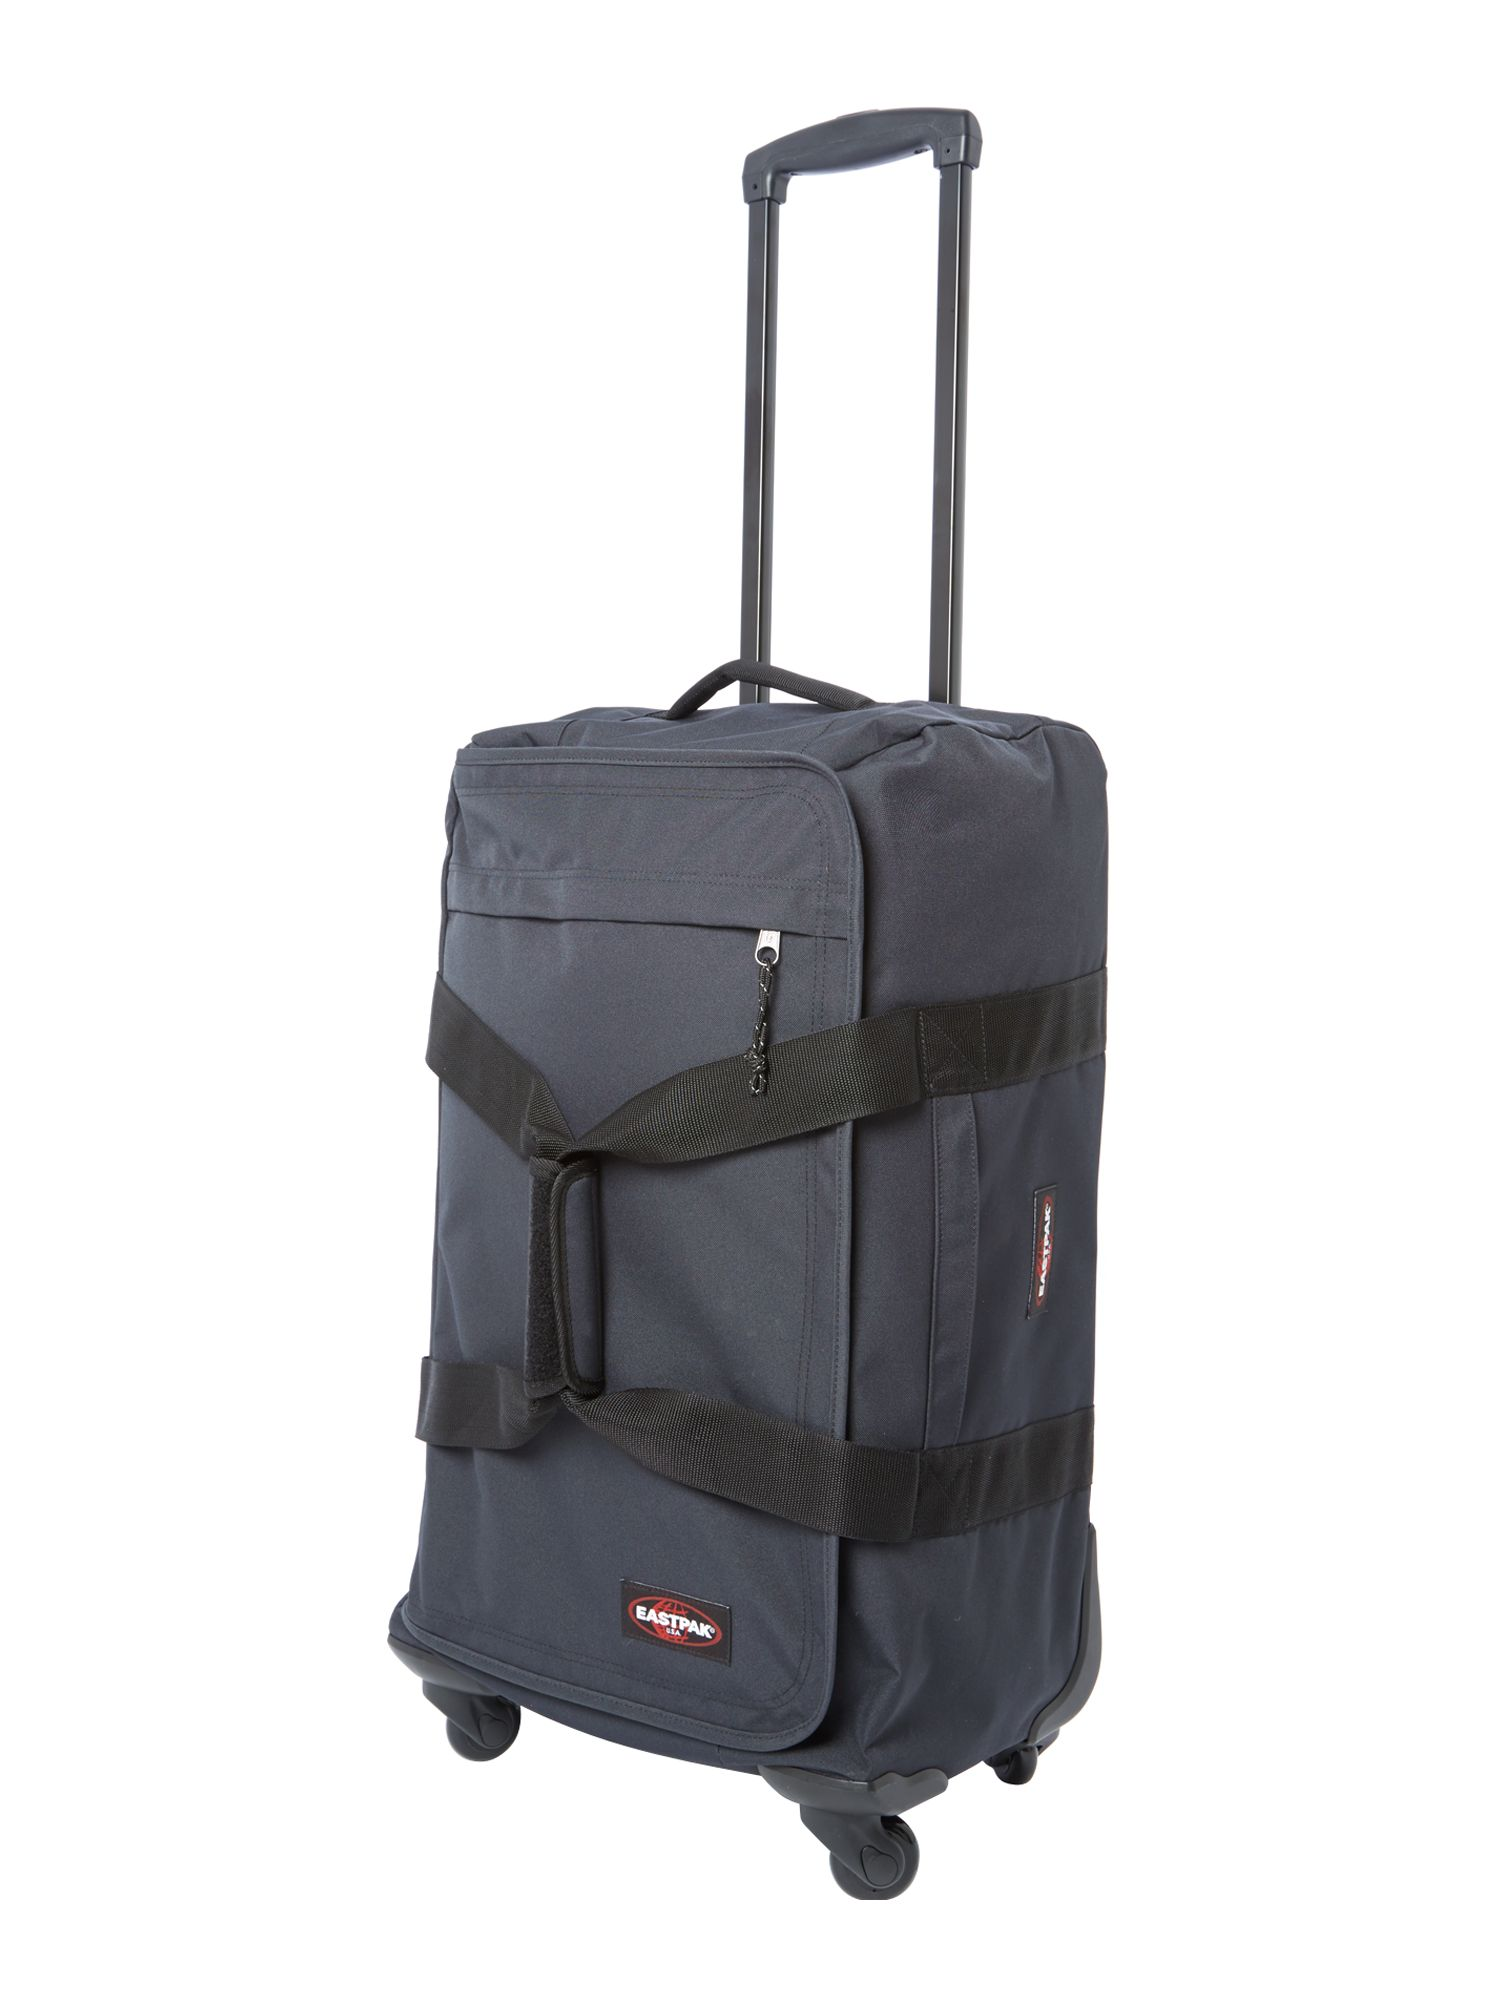 Spinnerz midnite blue medium trolley duffle